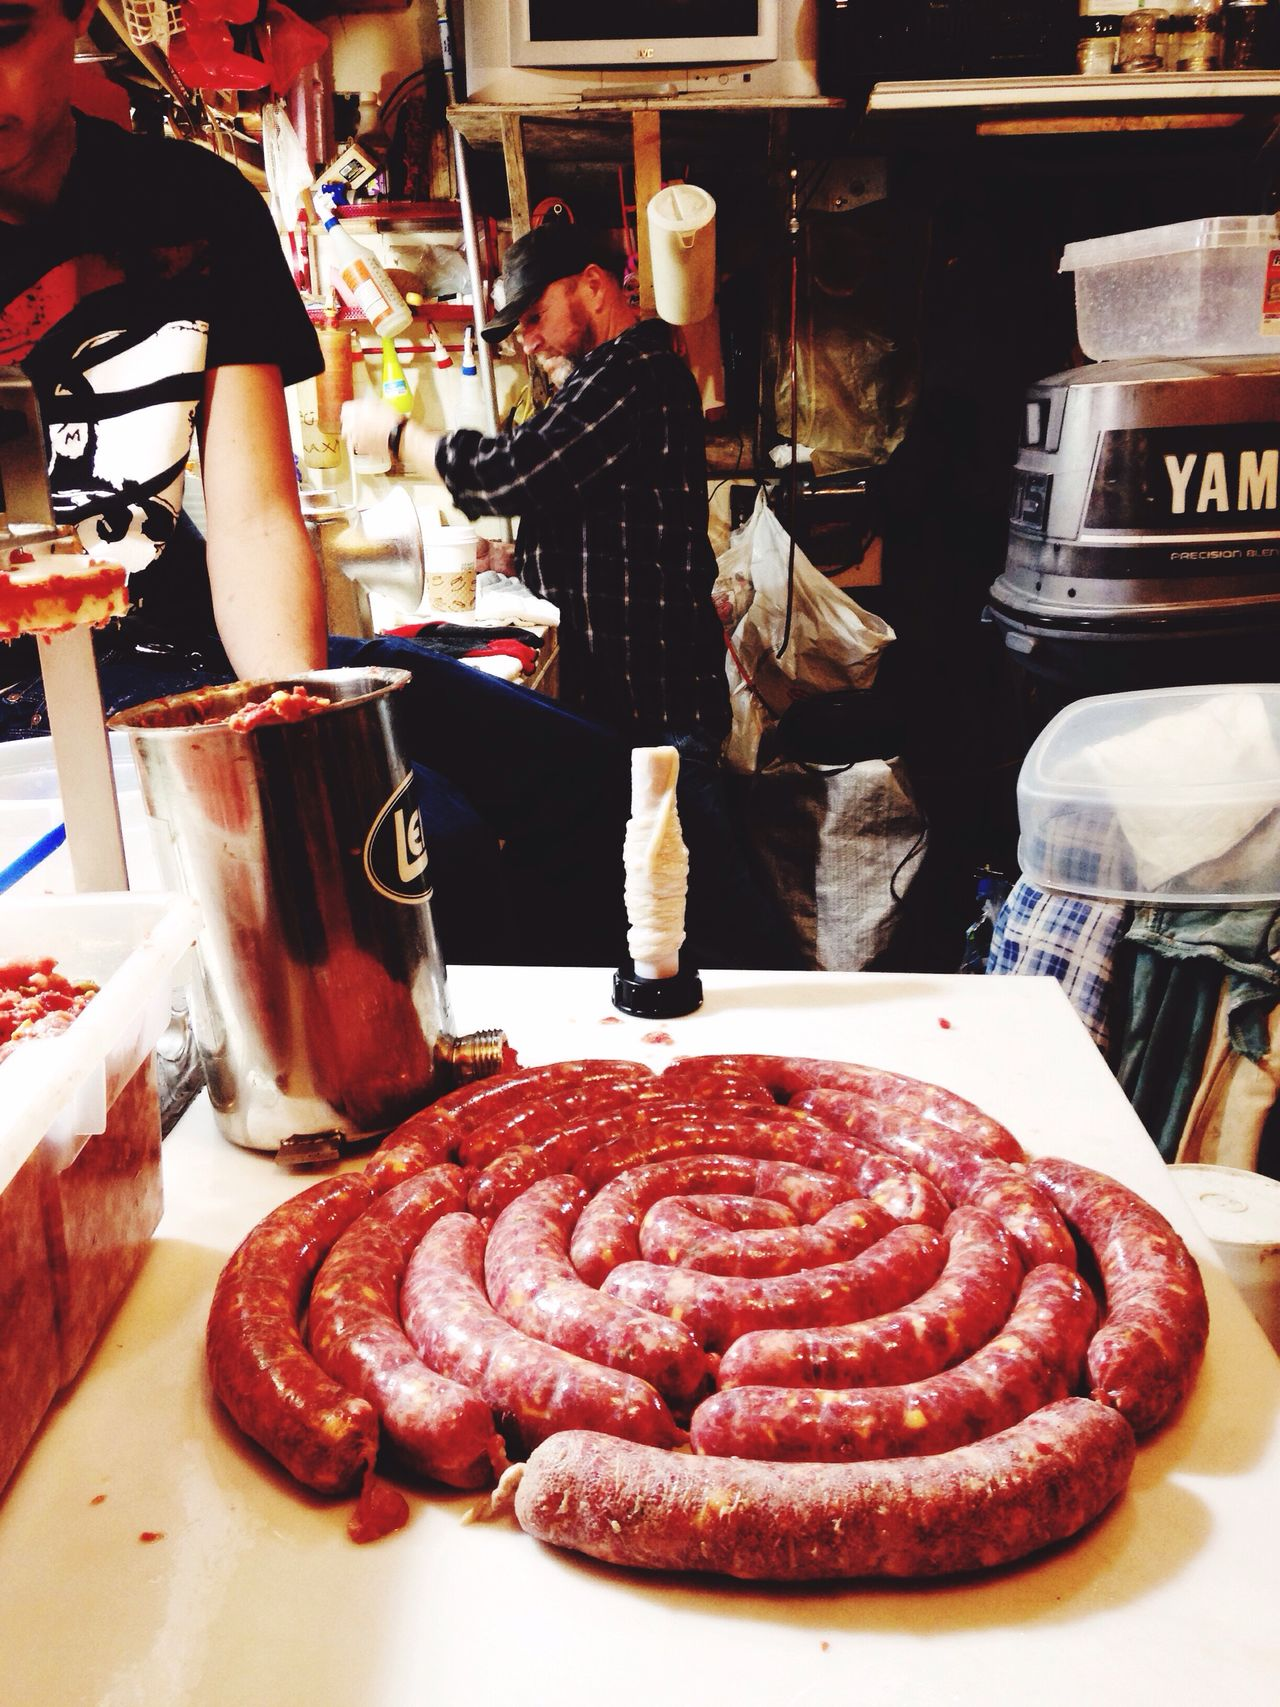 Handmade For You Amazing fresh homemade sausage right out of the garage , just the perfect setup . Friends come together and help each other making different flavors and some with cheese. What an abundance to share and soooo good looking . Let's break out the sourkraut....Oh and the beer of choice🍺🍺